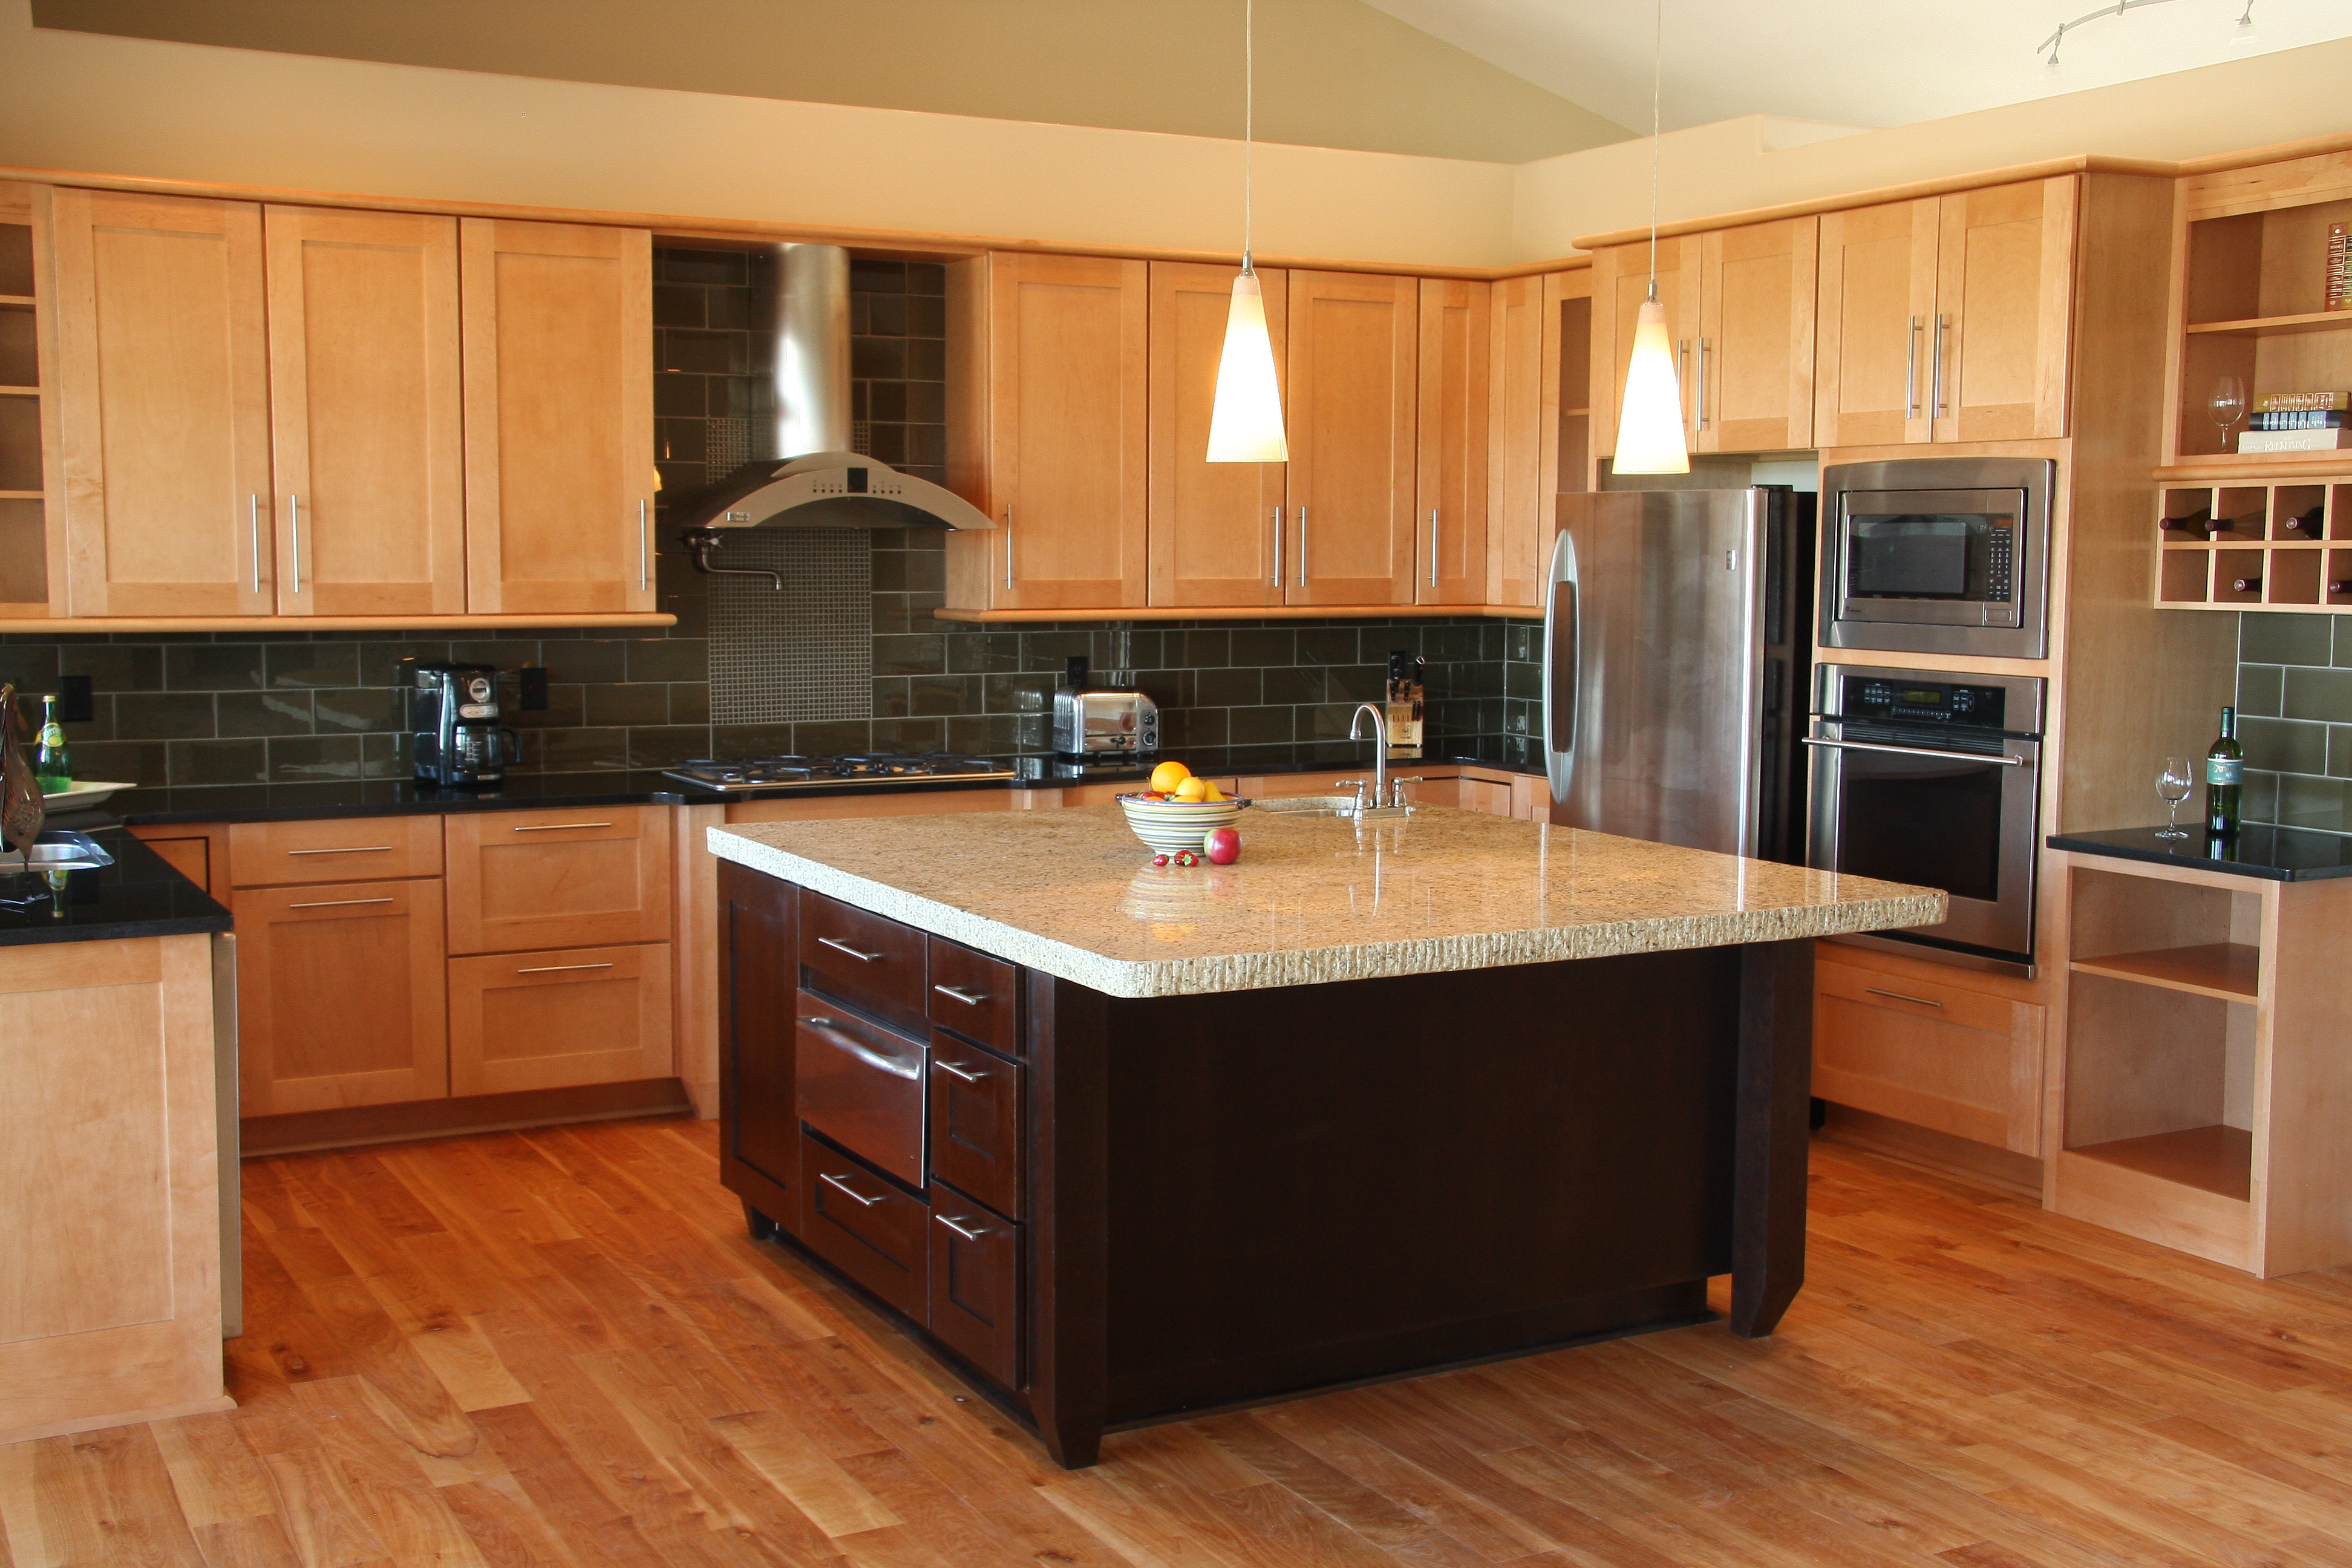 Kitchen Cabinet Basics The Kitchen Places Basics To Consider Before Purchasing